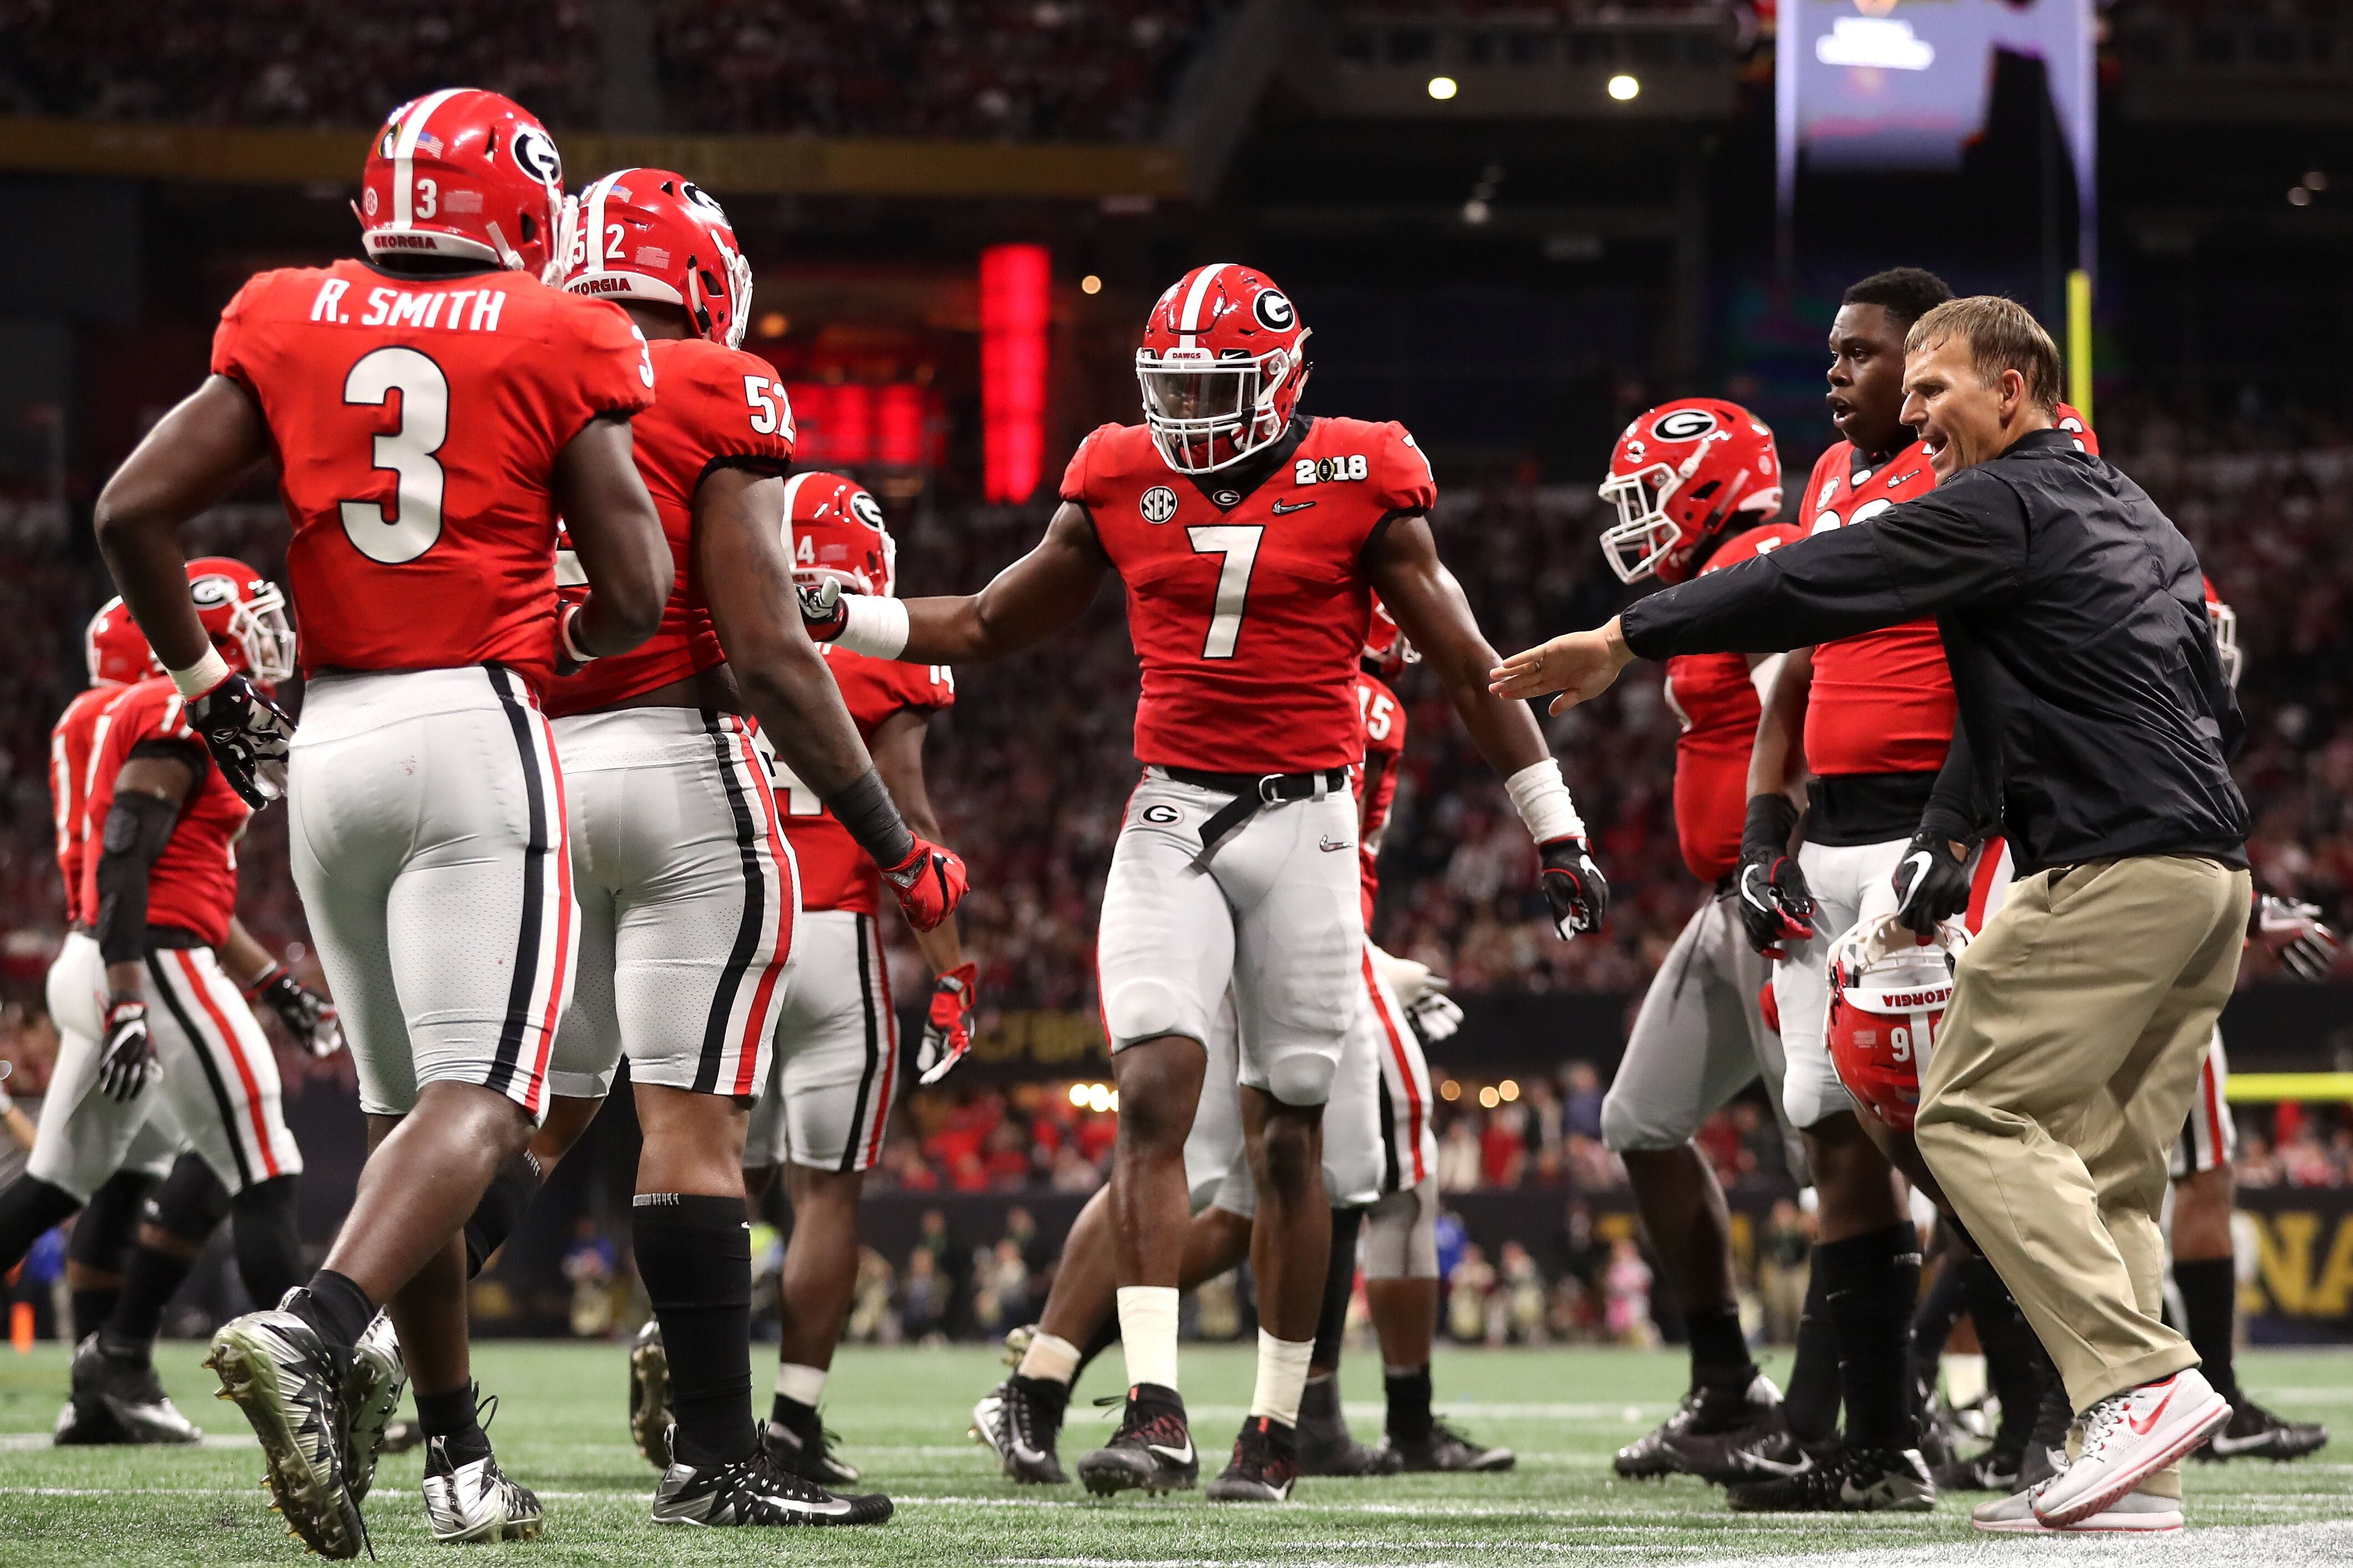 902745128-cfp-national-championship-presented-by-at.jpg